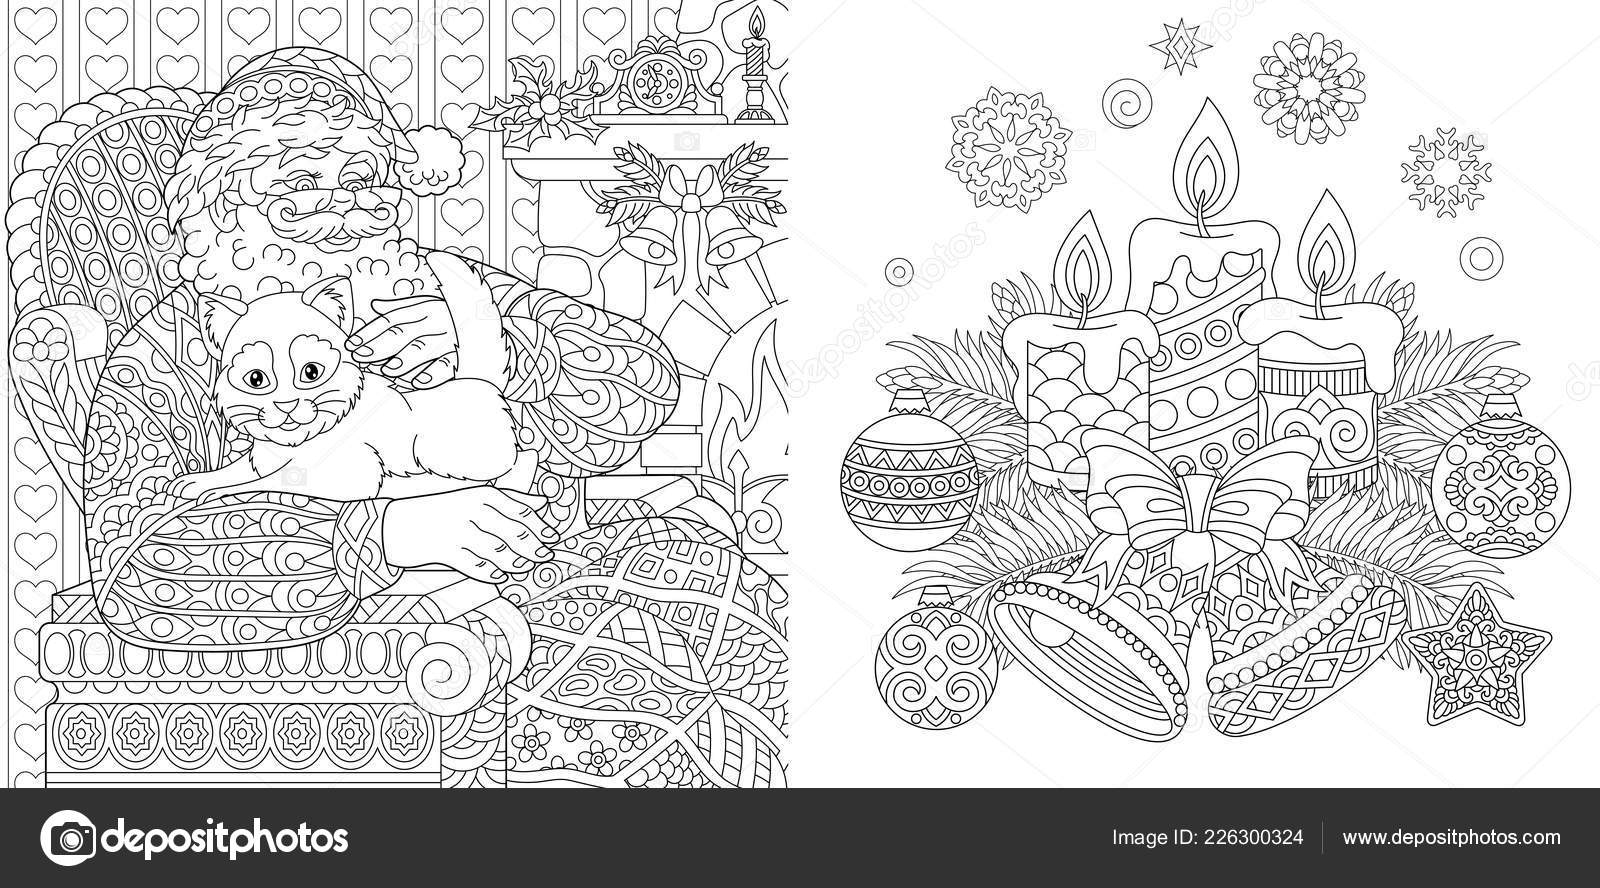 New Year coloring pages, Christmas coloring pages | Christmas ... | 888x1600